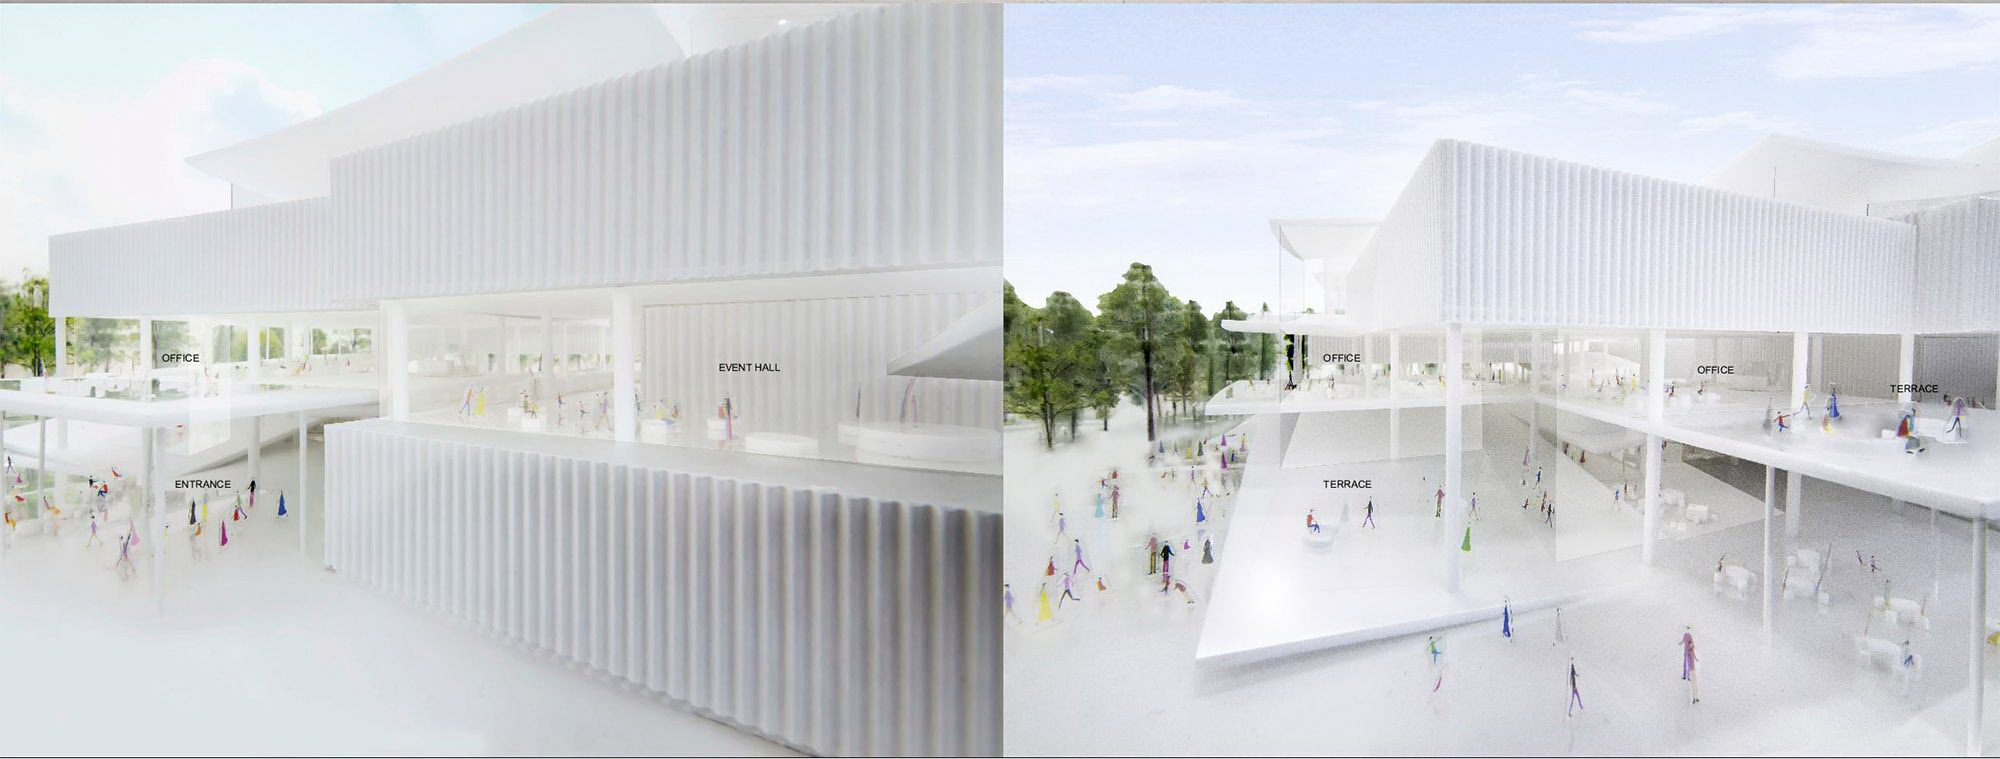 mm_new national gallery-ludwig museum design by SANAA_16